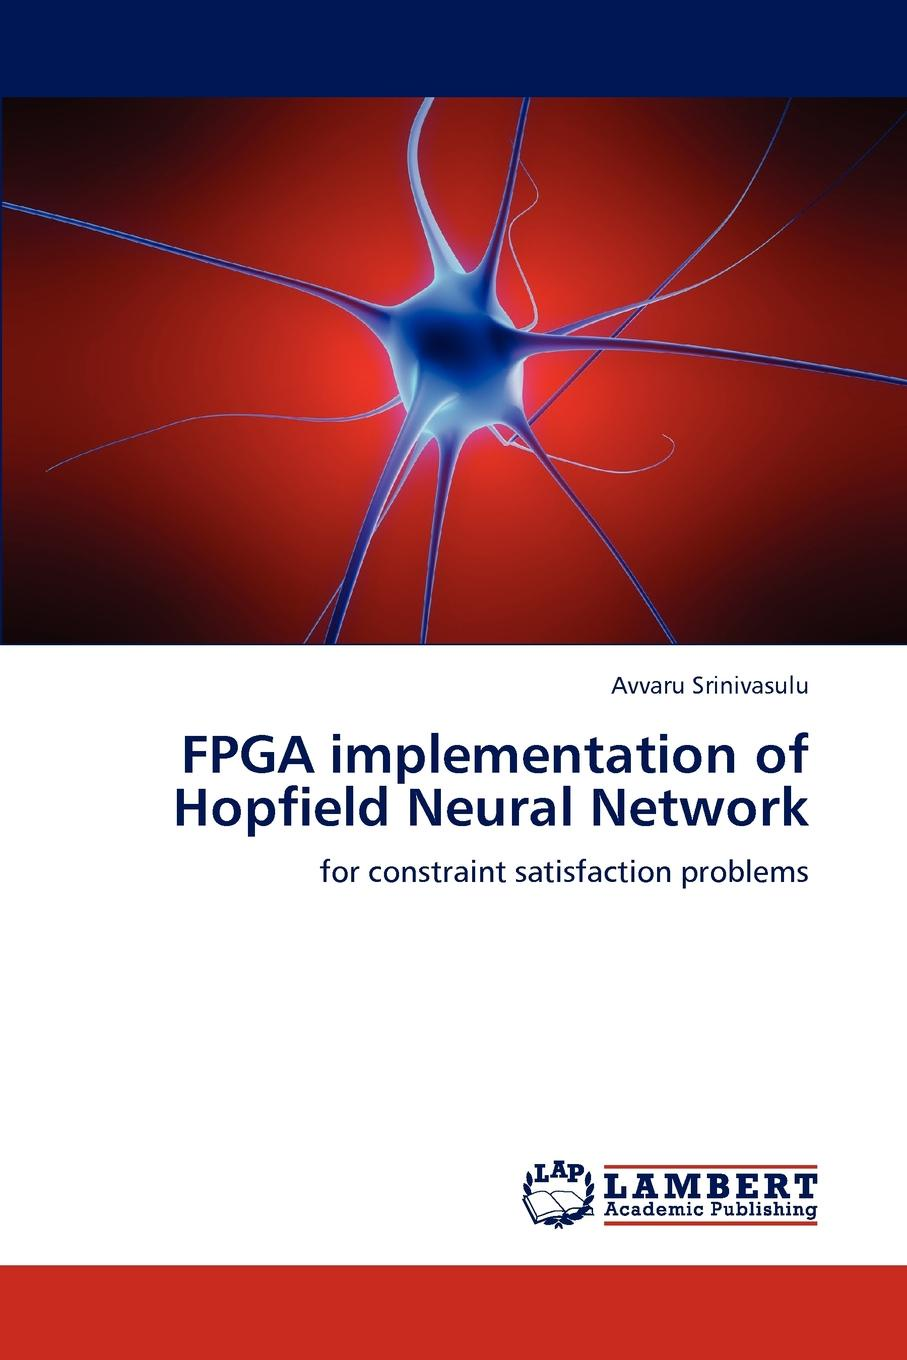 лучшая цена Avvaru Srinivasulu FPGA Implementation of Hopfield Neural Network